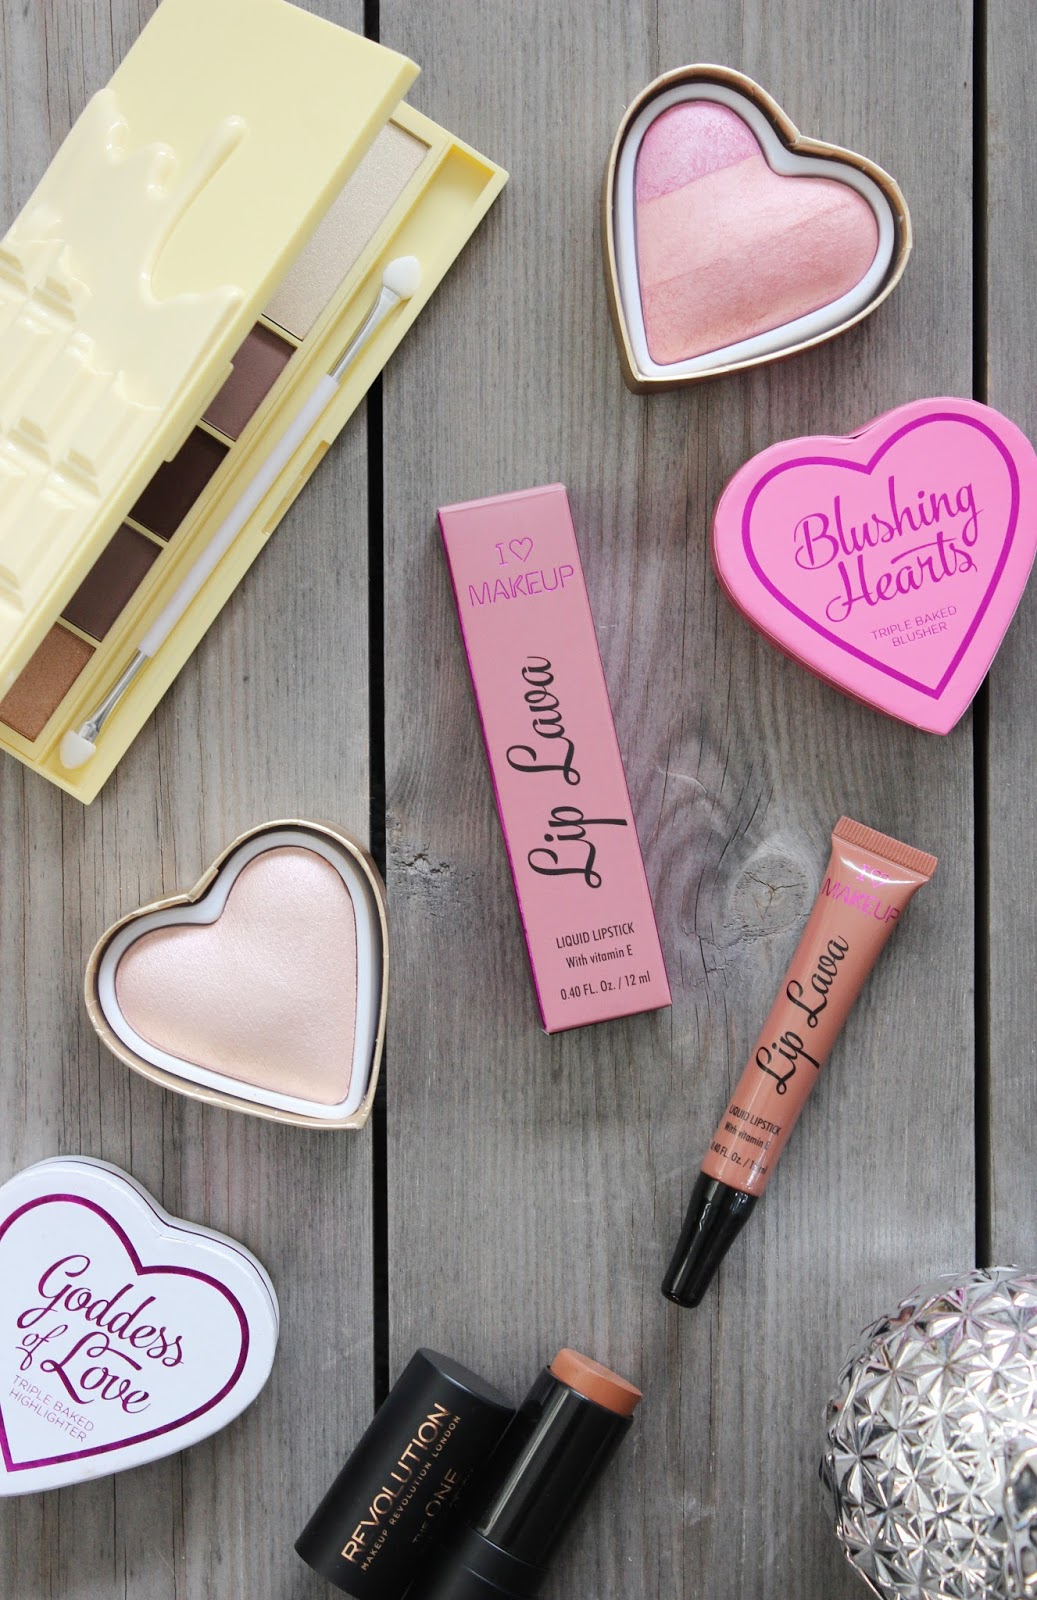 5 New Drugstore Finds